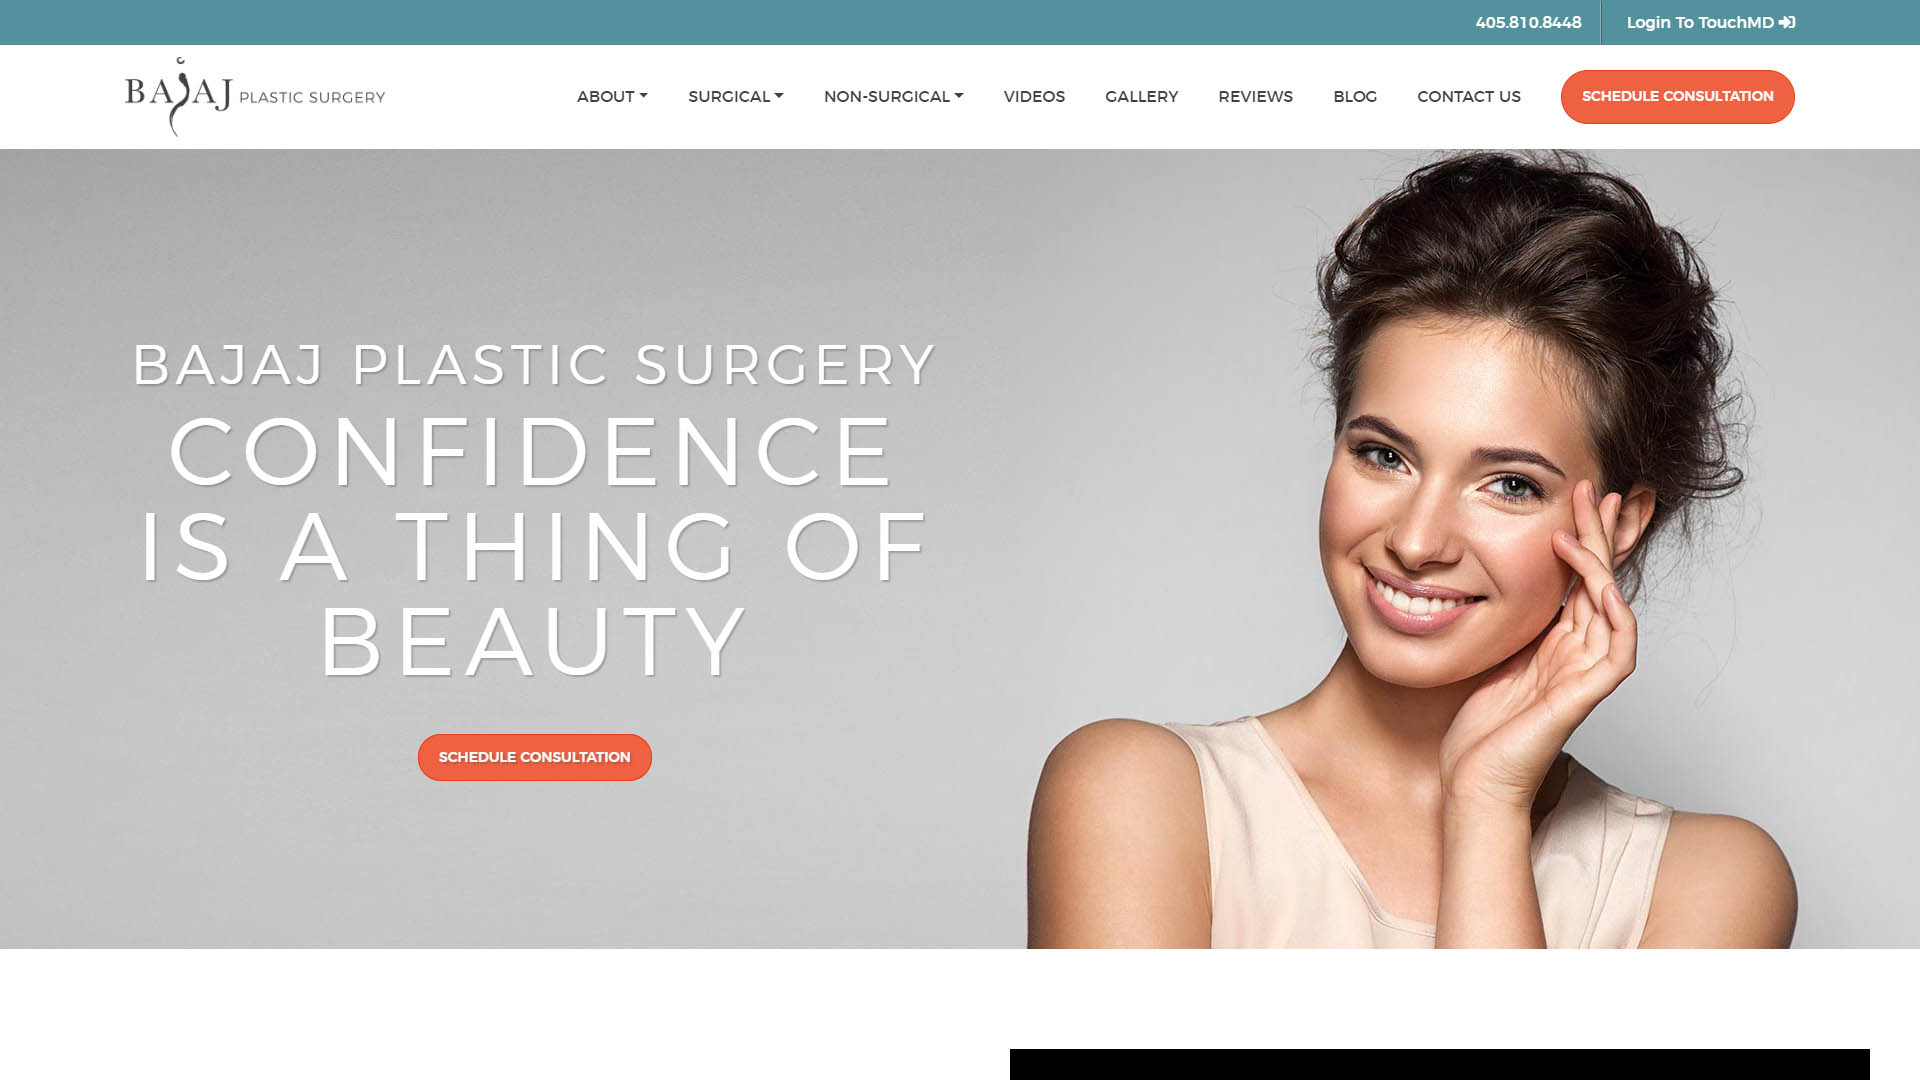 Bajaj Plastic Surgery Website Portfolio Image